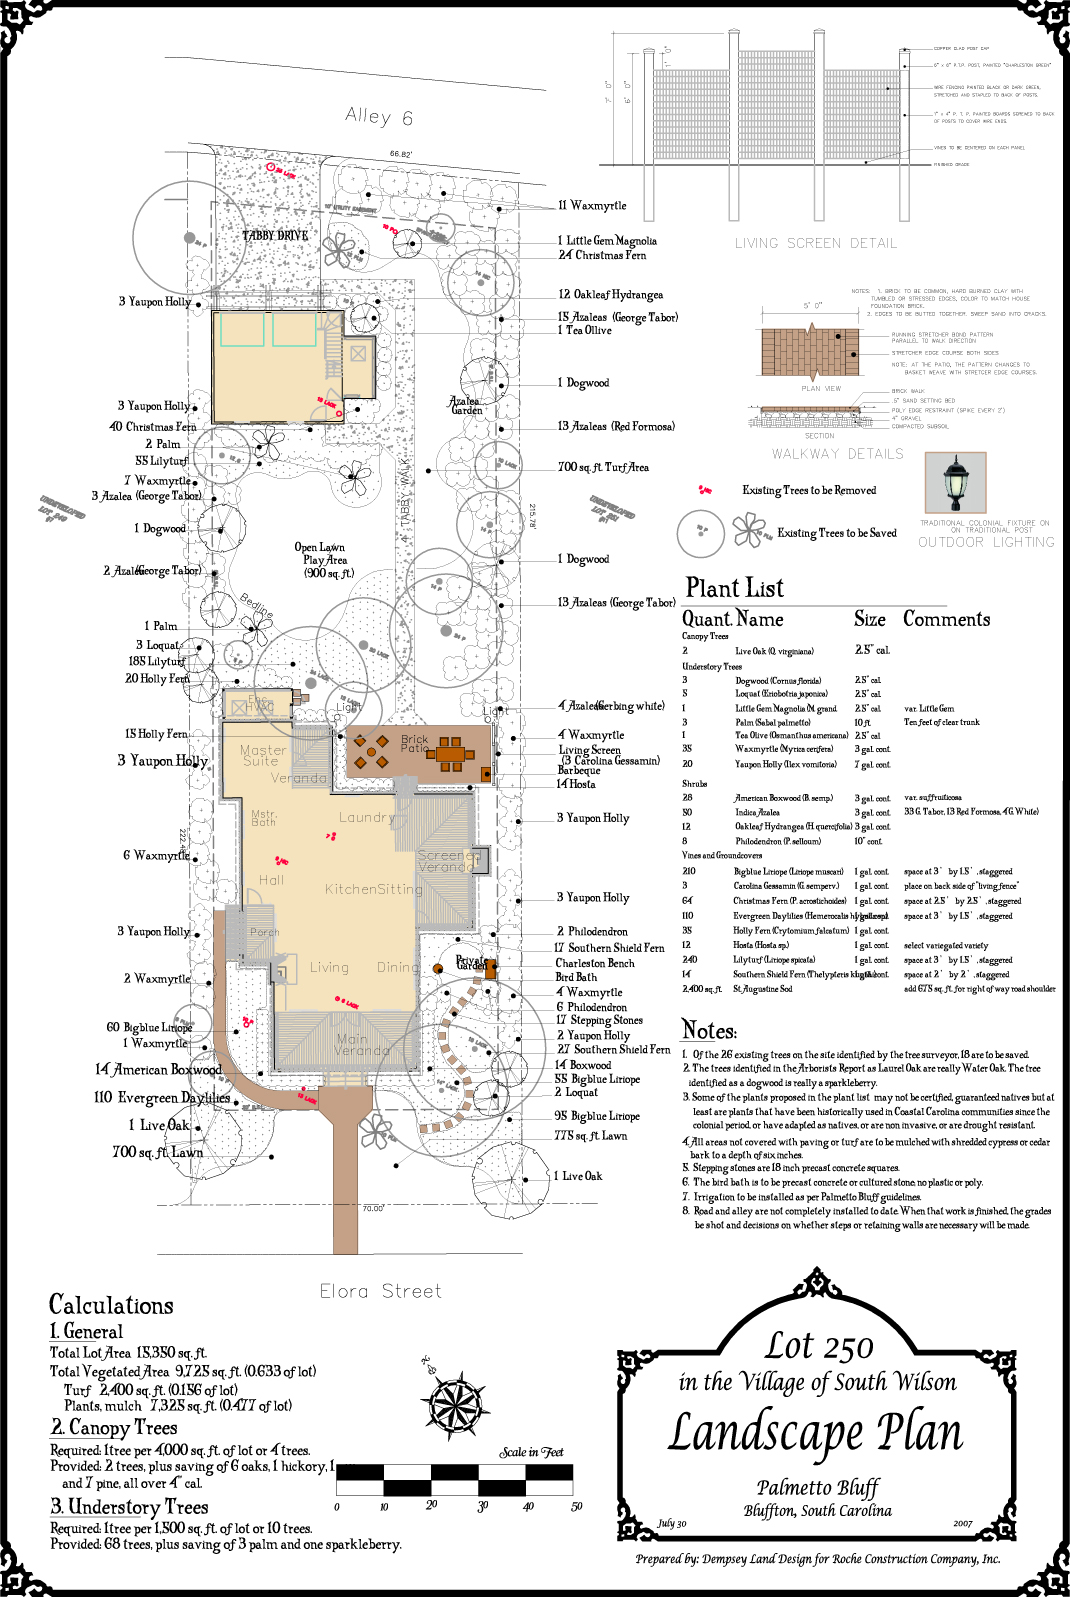 Landscape Plan, Palmetto Bluff, Bluffton, South Carolina